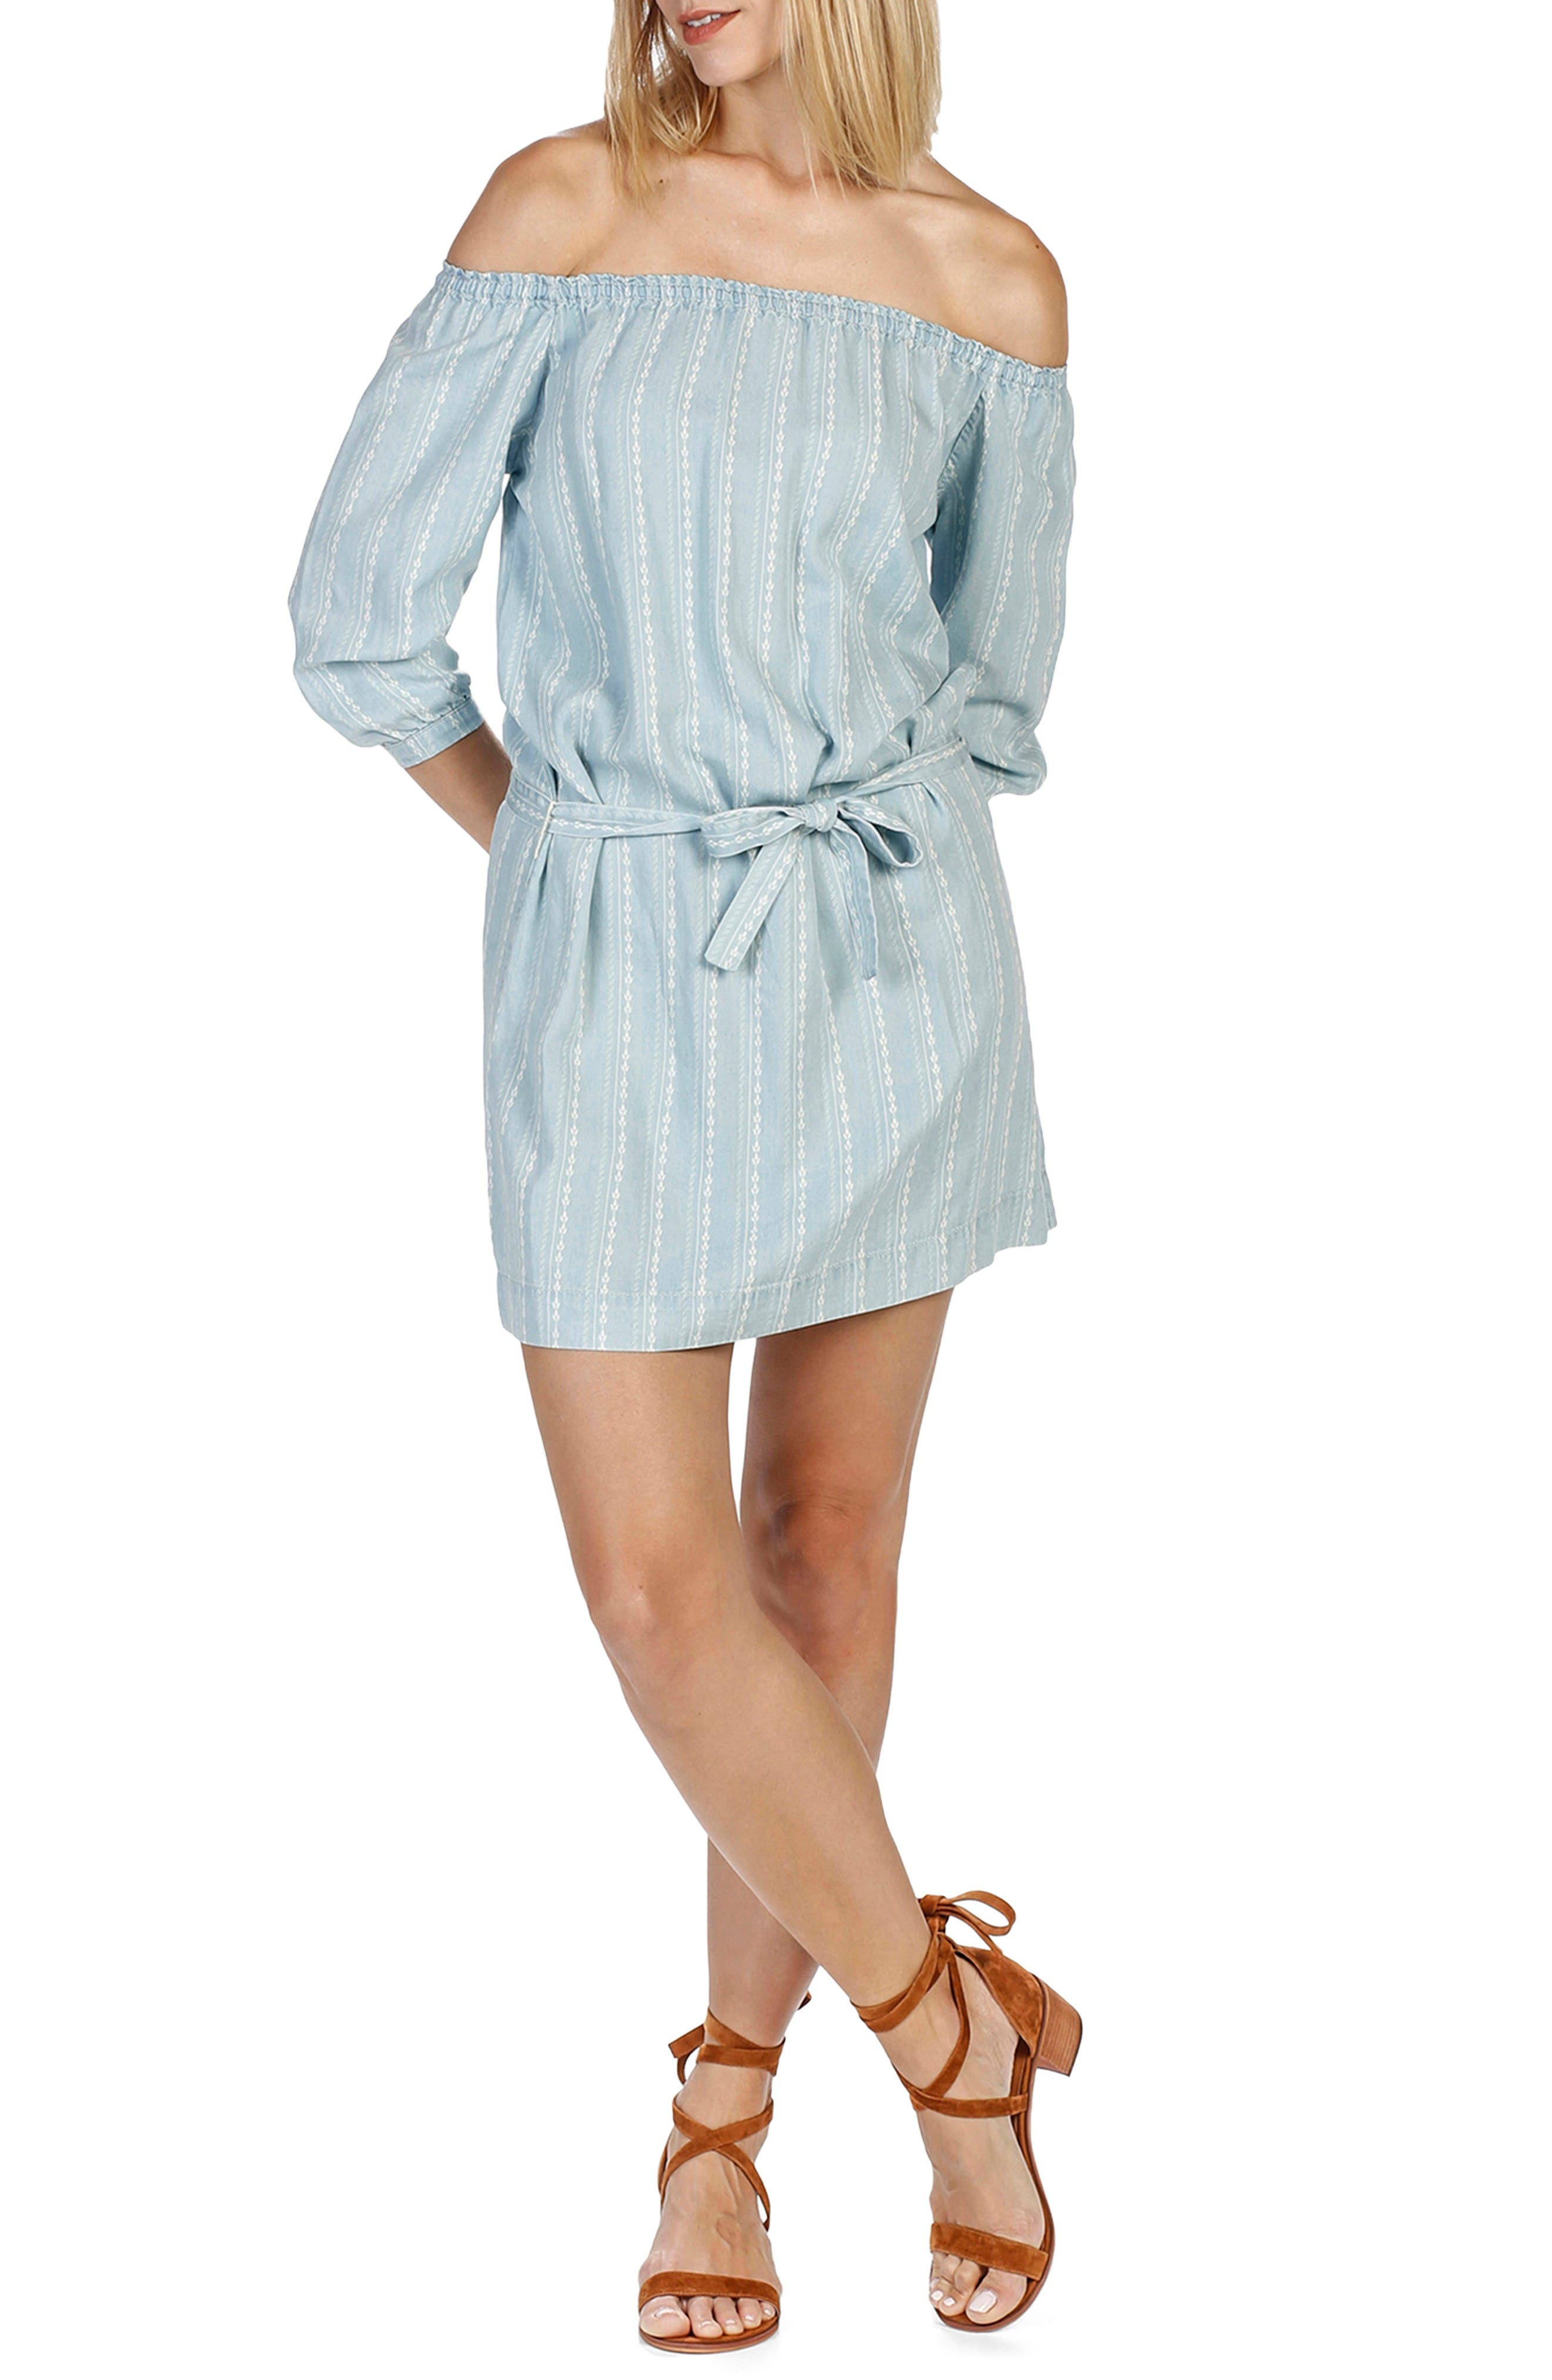 Main Image - PAIGE Beatrice Chambray Off the Shoulder Dress